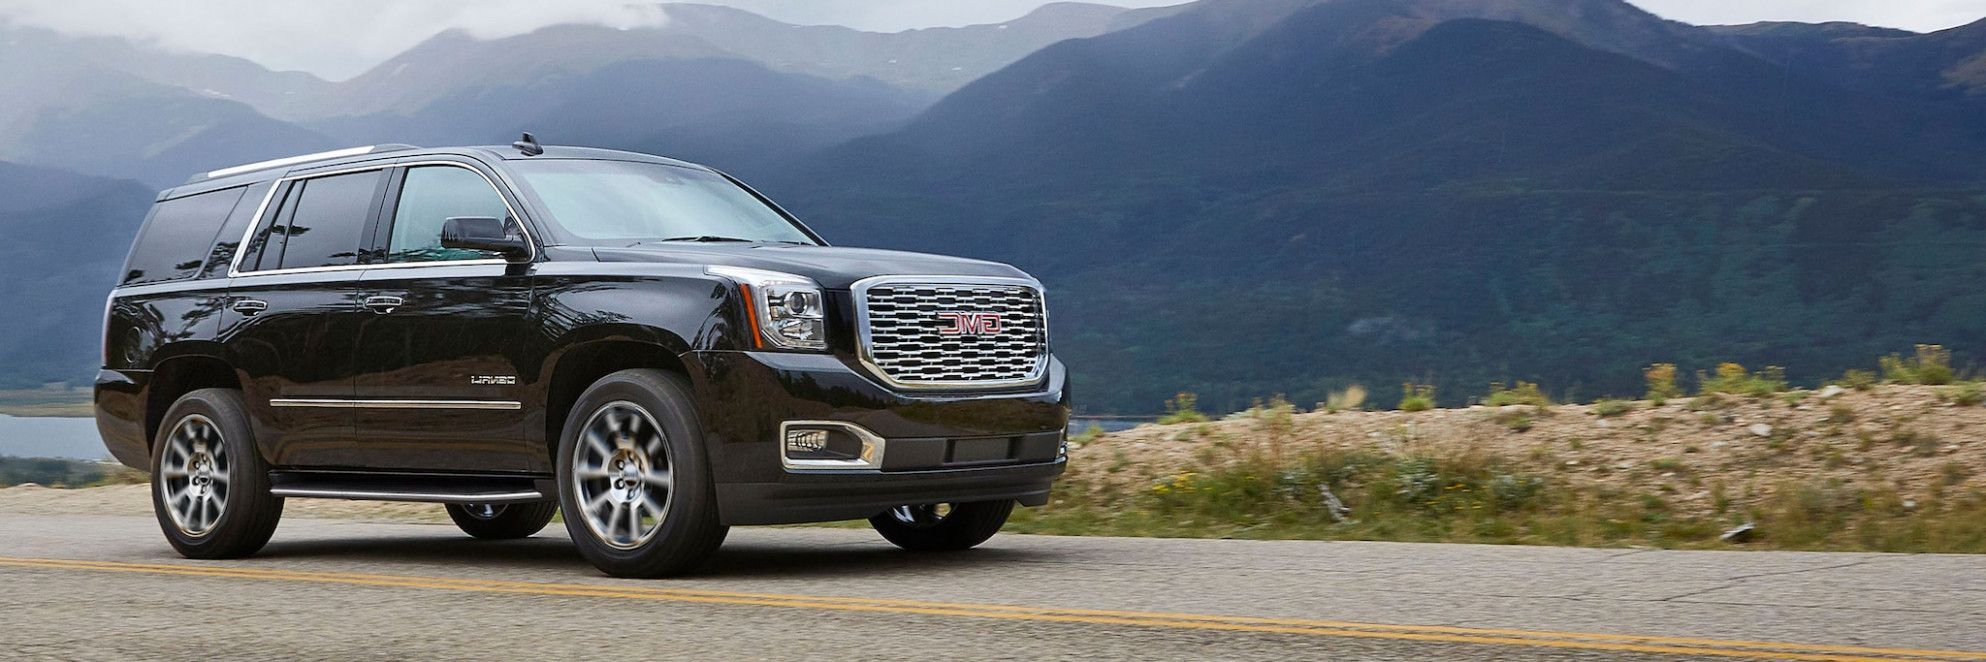 I Will Tell You The Truth About Gmc Yukon 2020 For Sale In Gmc Yukon Xl Gmc Yukon Gmc Denali